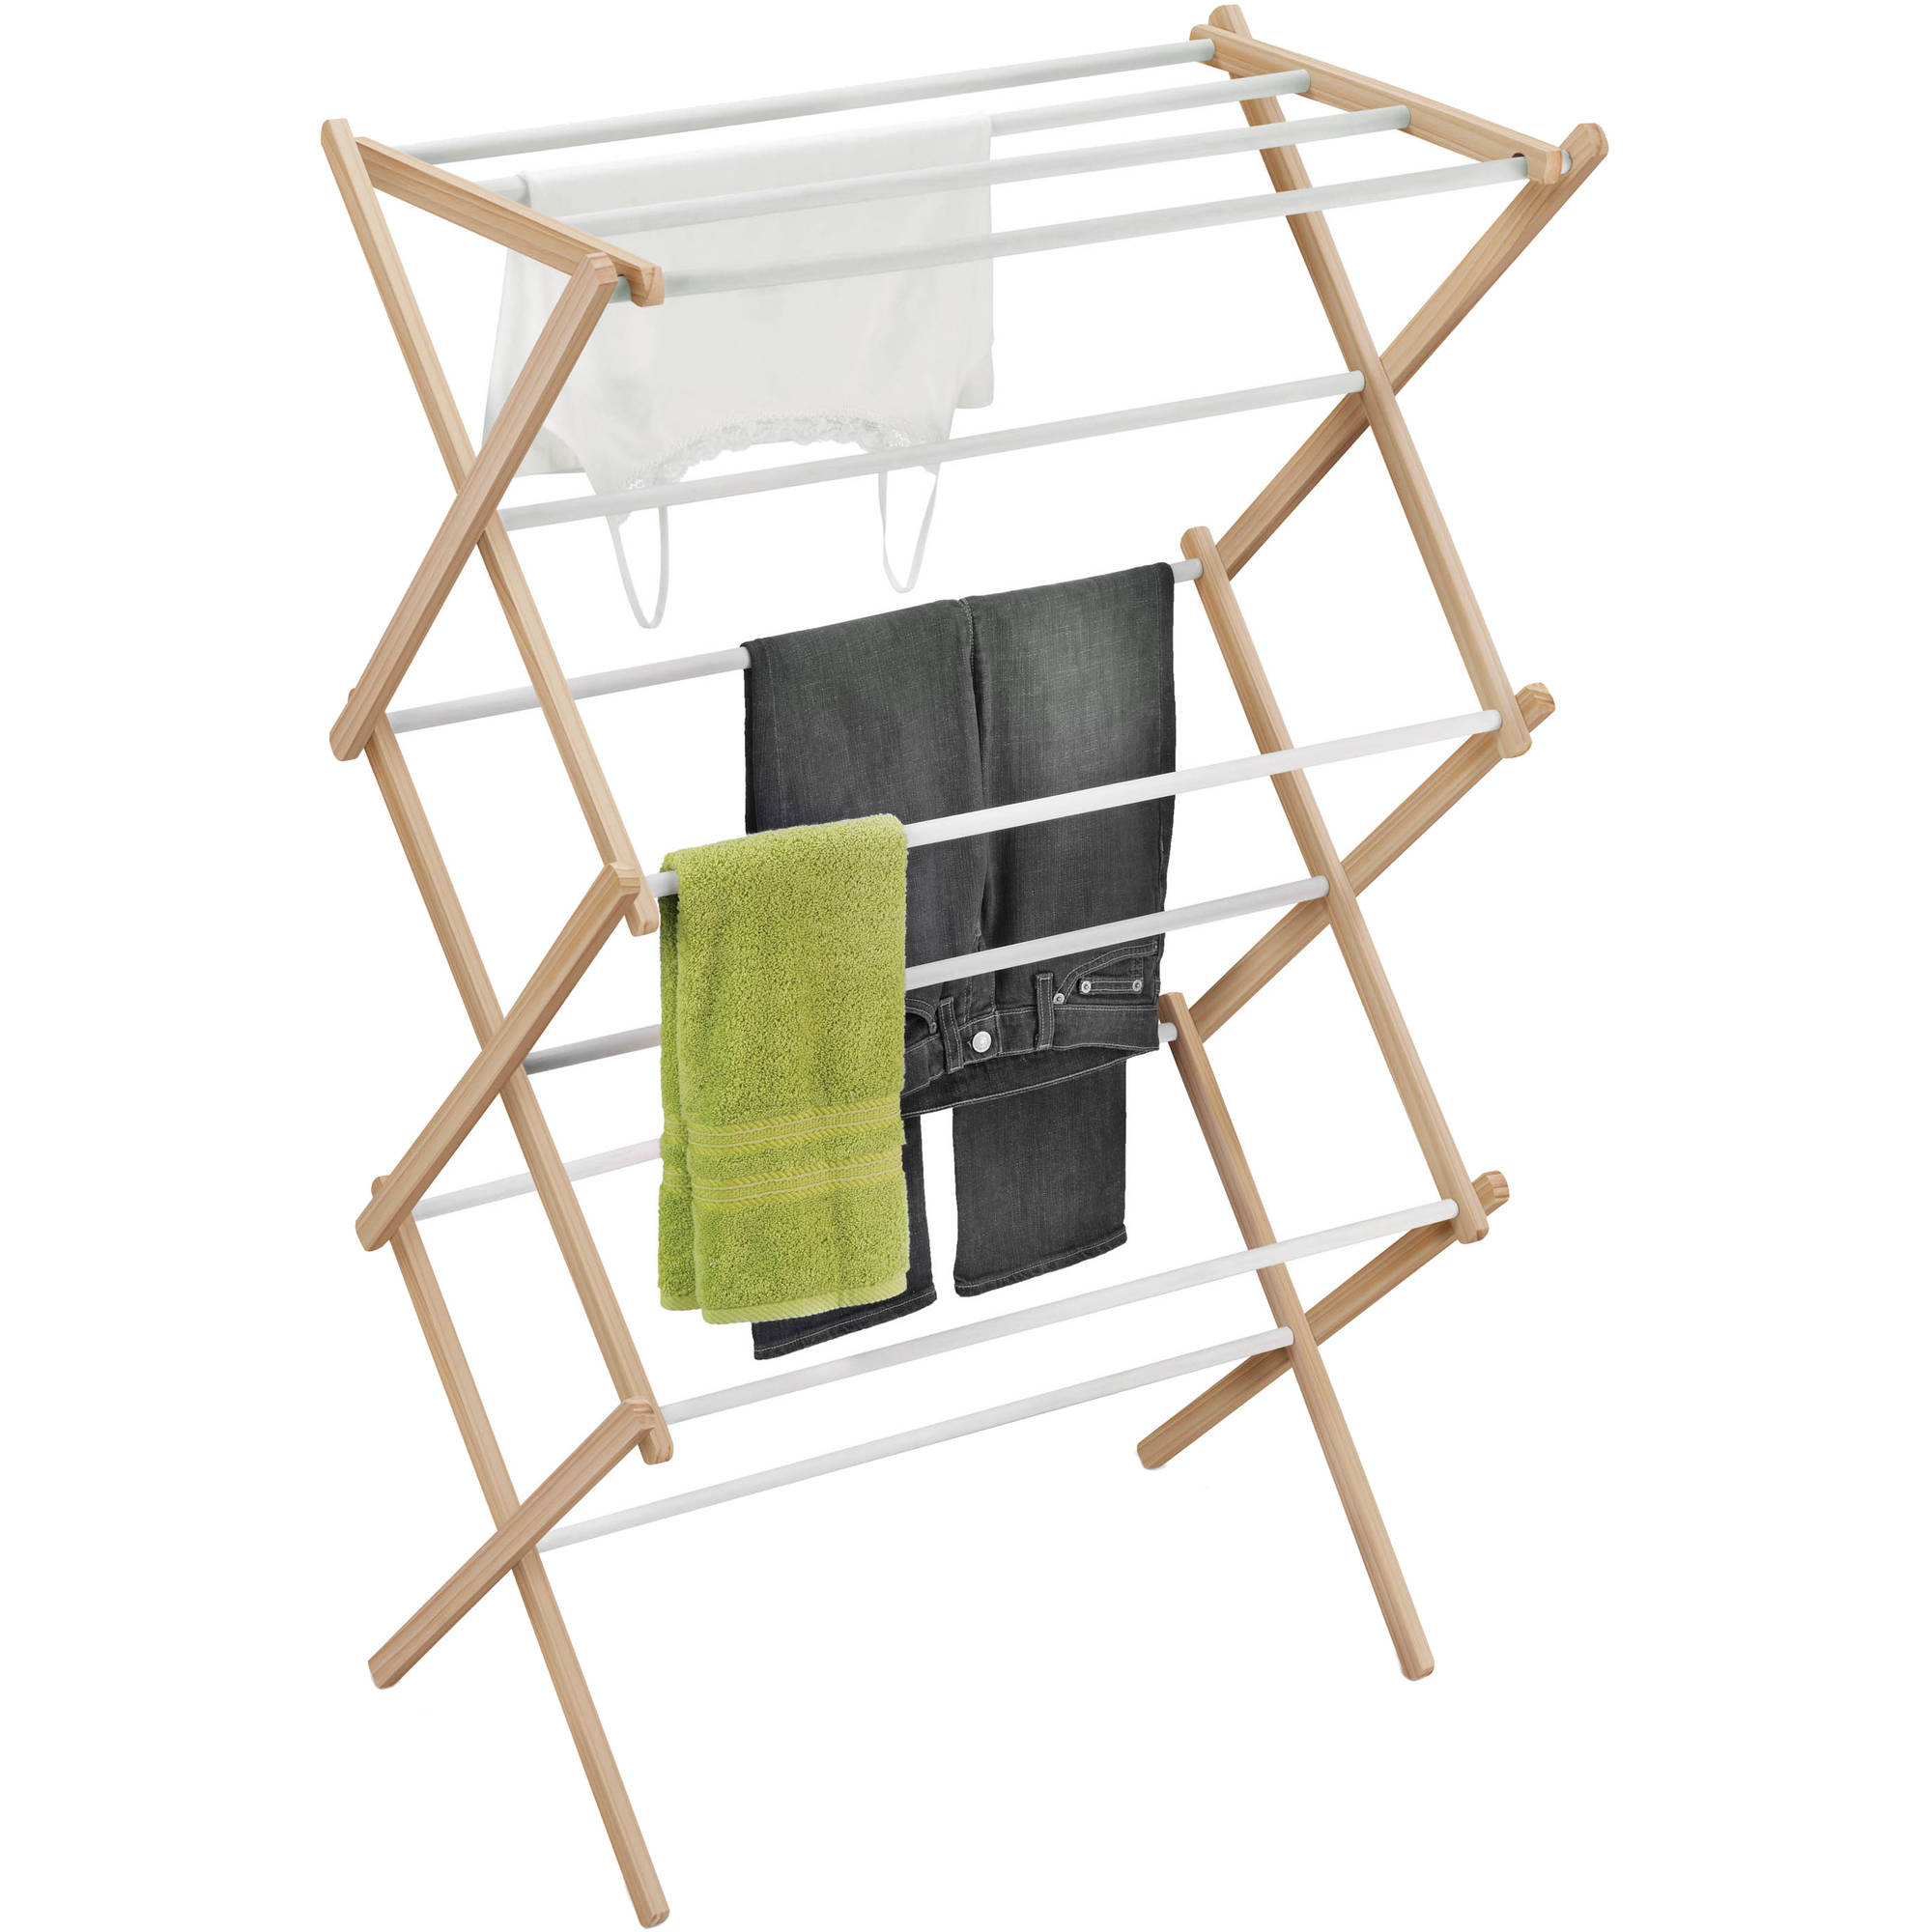 space laundry mounted hanger wall regarding x decor size rack mount clothes dryer drying room